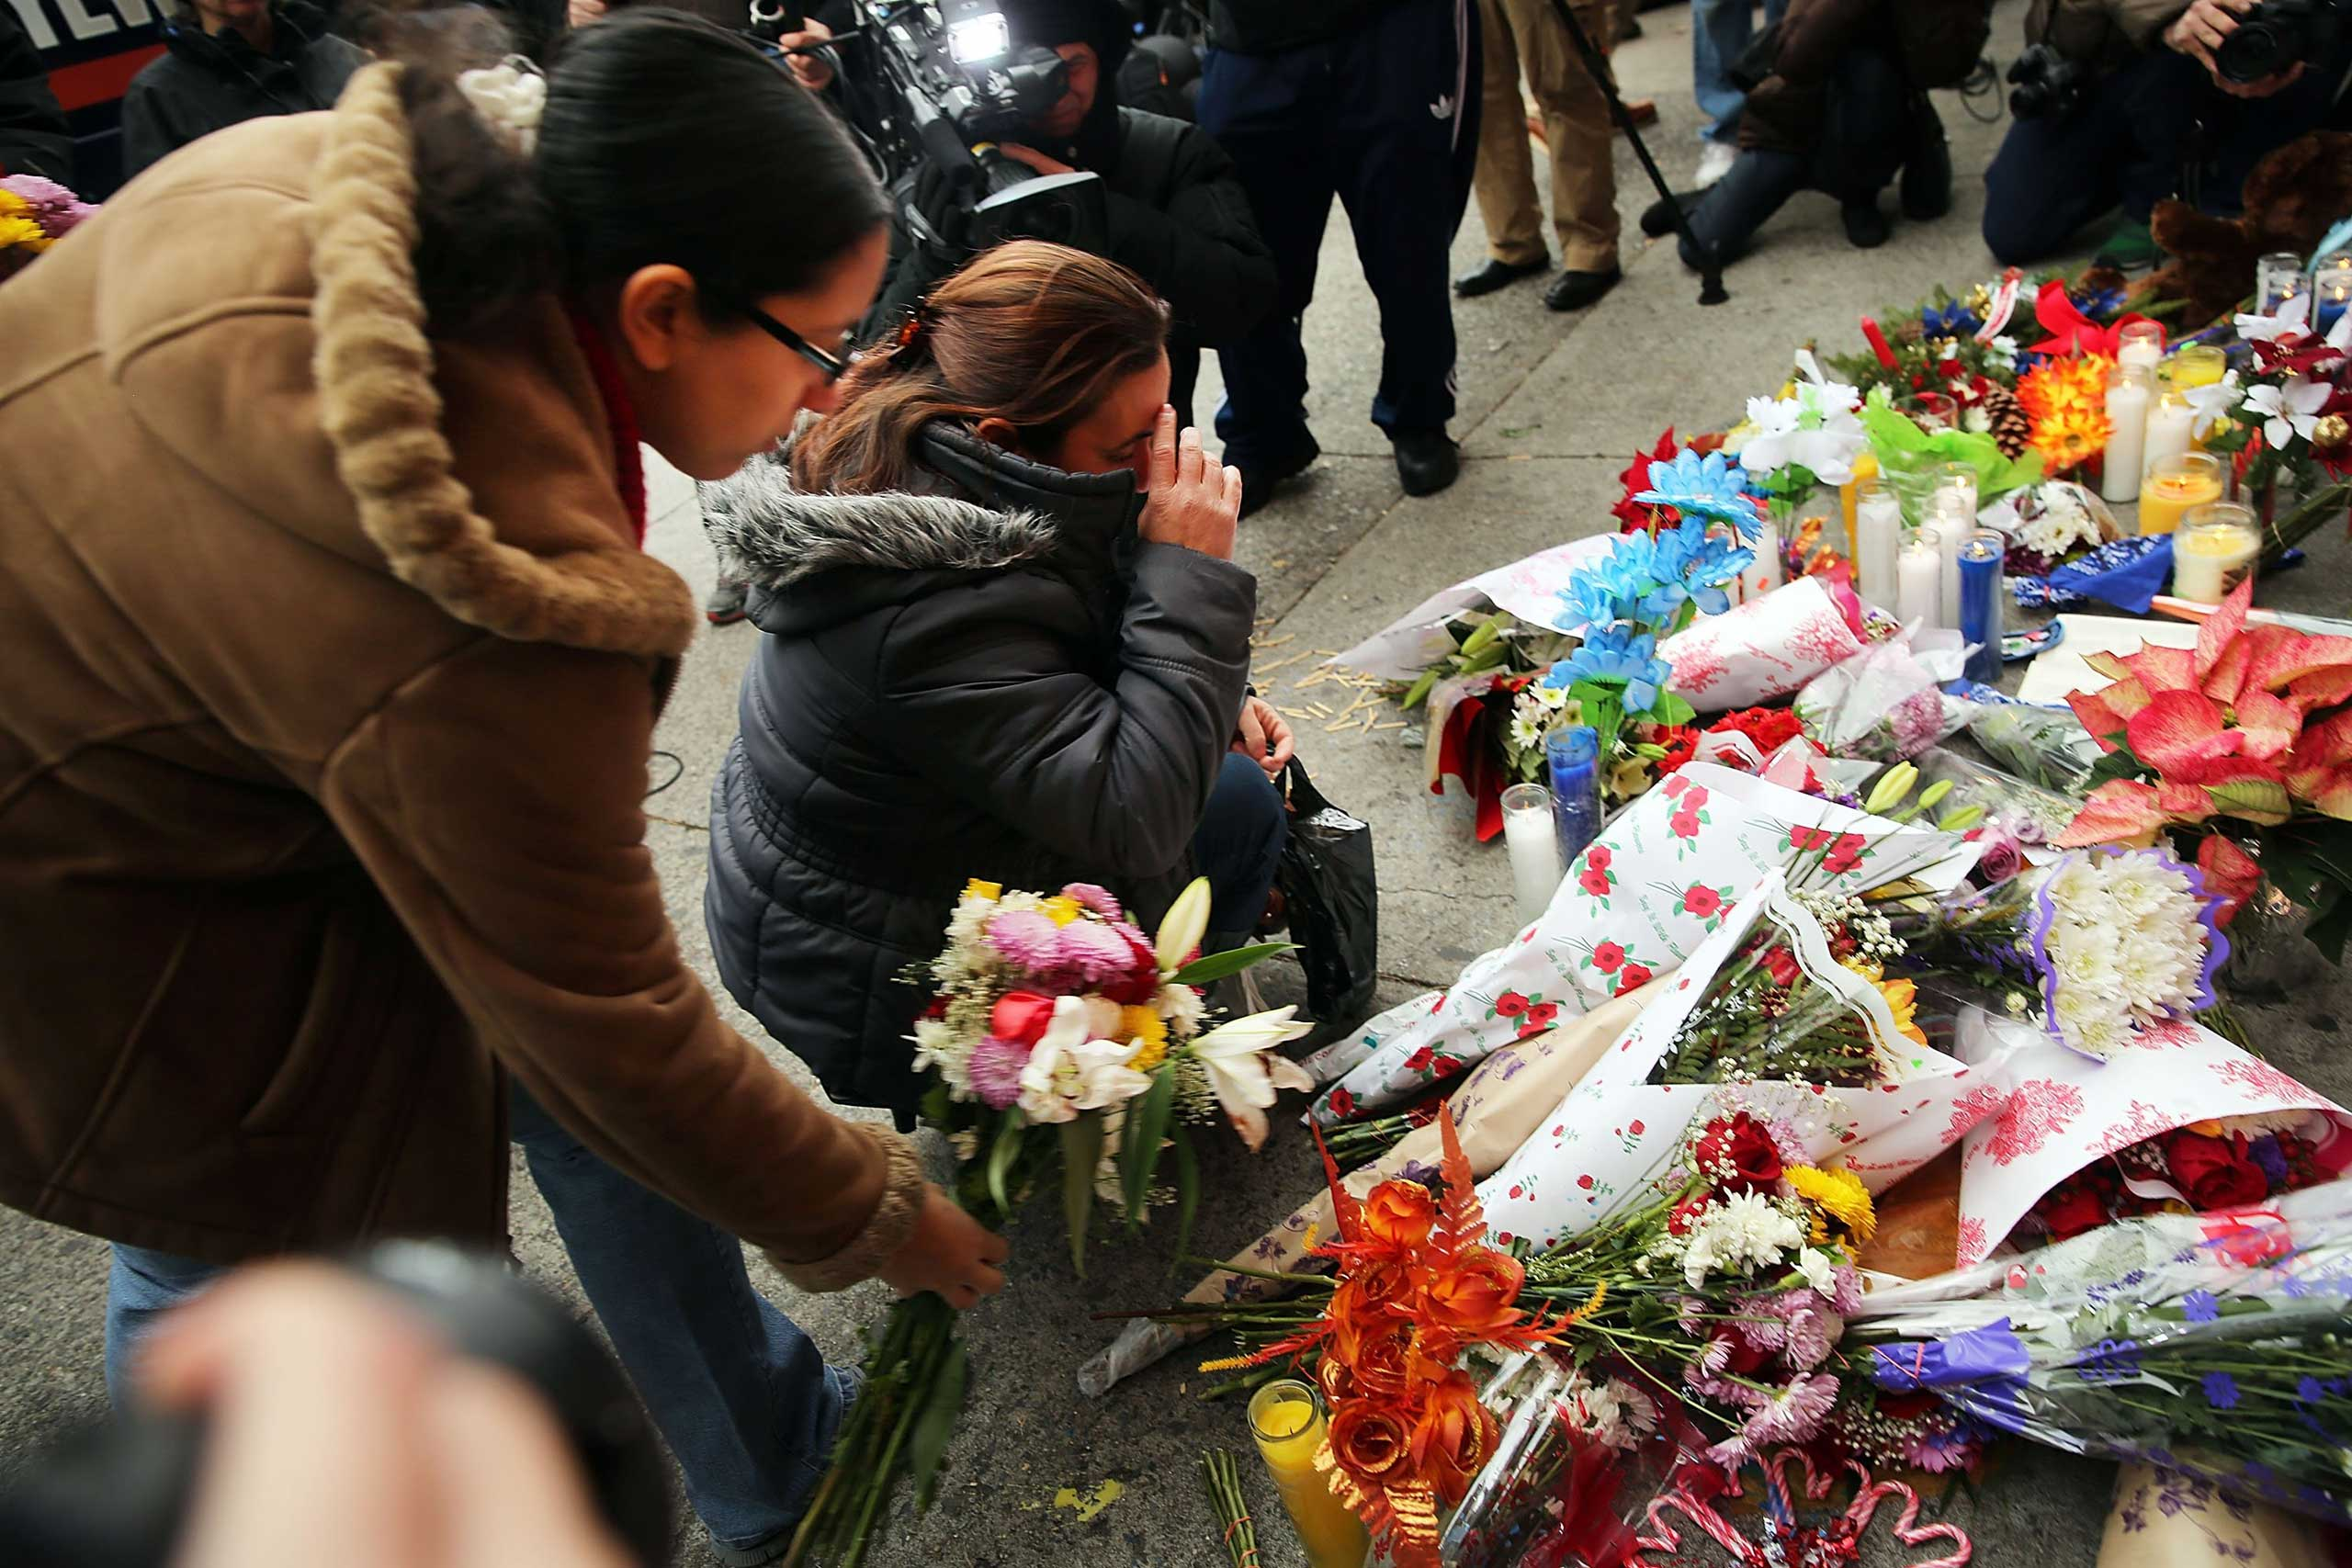 Women place flowers at a memorial to the two New York Police Department (NYPD) officers that were shot and killed nearby Dec. 21, 2014 in the Bedford Stuyvesant neighborhood of the Brooklyn borough of New York City.